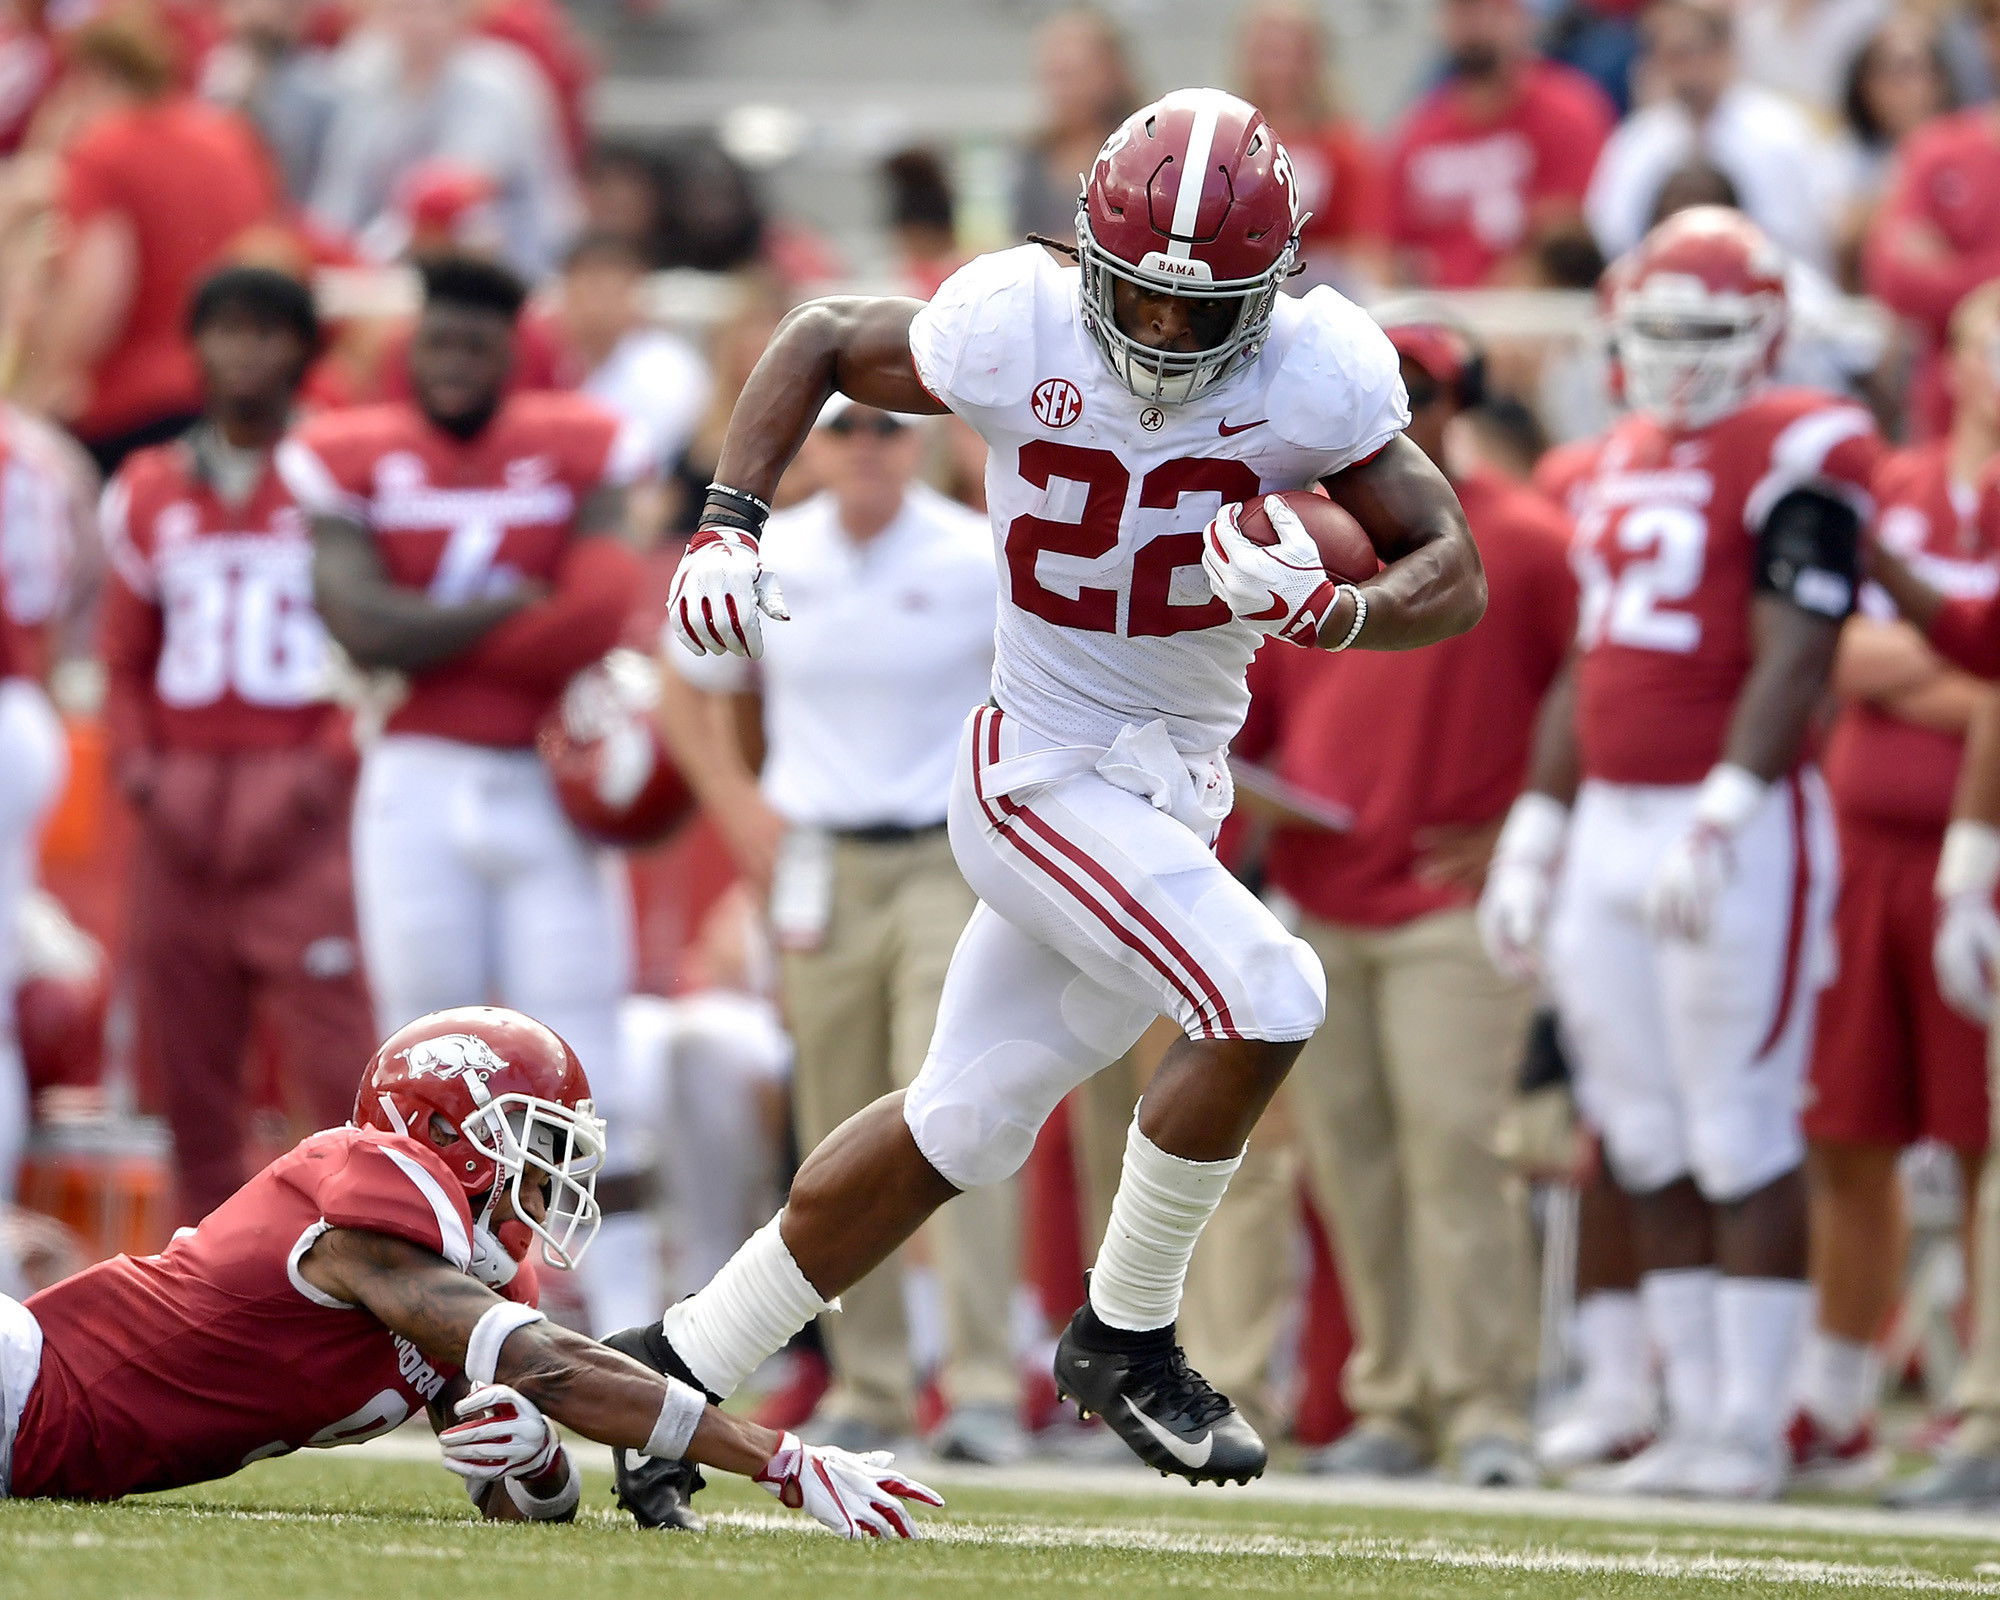 Alabama Crimson Tide running back Najee Harris (22) escapes a tackle in the second half of the NCAA football game against the Arkansas Razorbacks at Razorback Stadium on Oct. 6, 2018, in Fayetteville, Ark. Alabama defeated Arkansas 65-31. (Photo by Lee Walls)